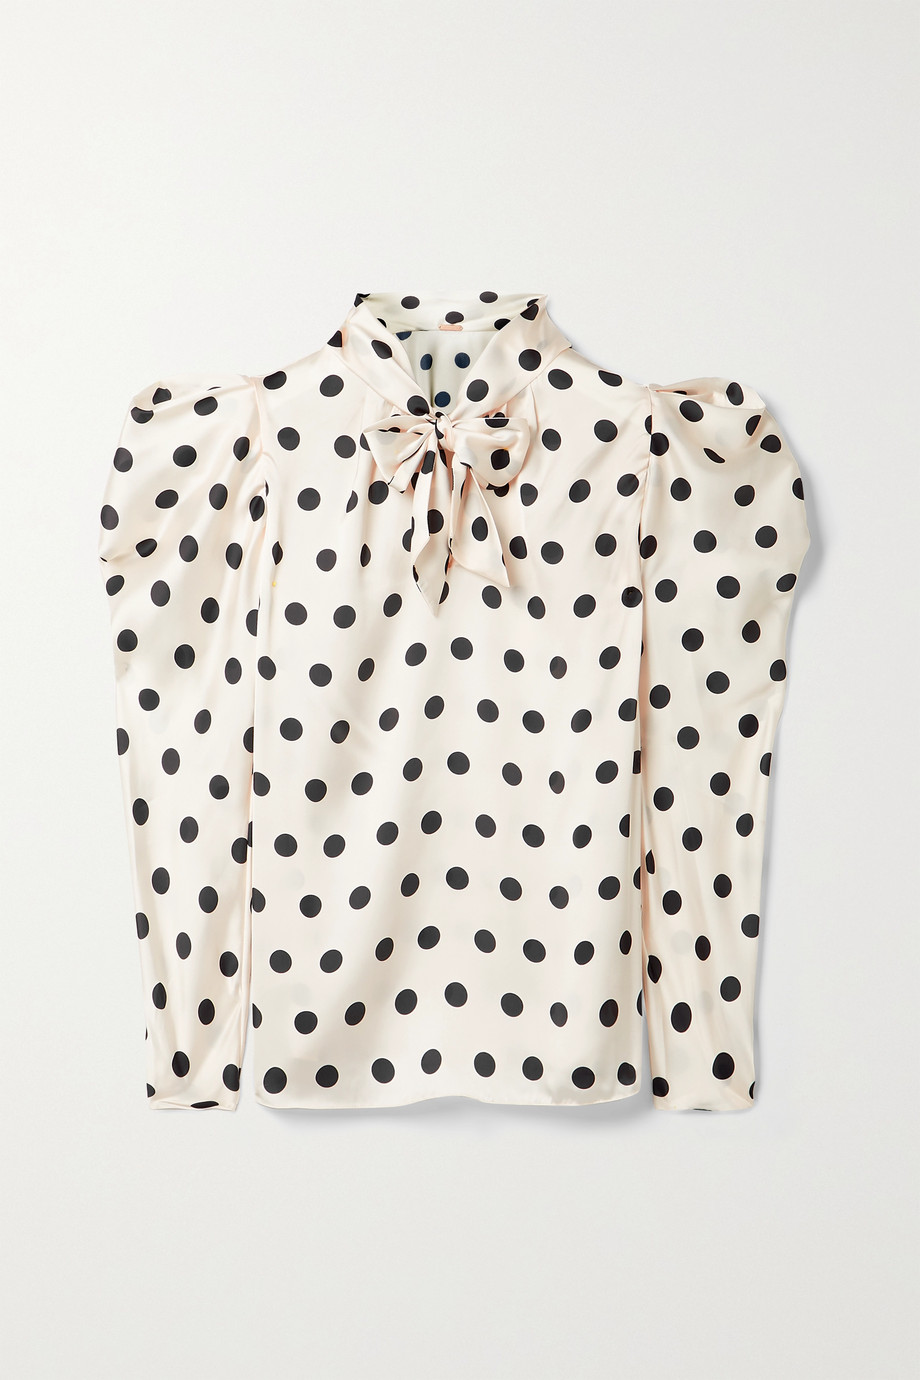 Johanna Ortiz + NET SUSTAIN The Big Dream polka-dot satin pussy-bow blouse